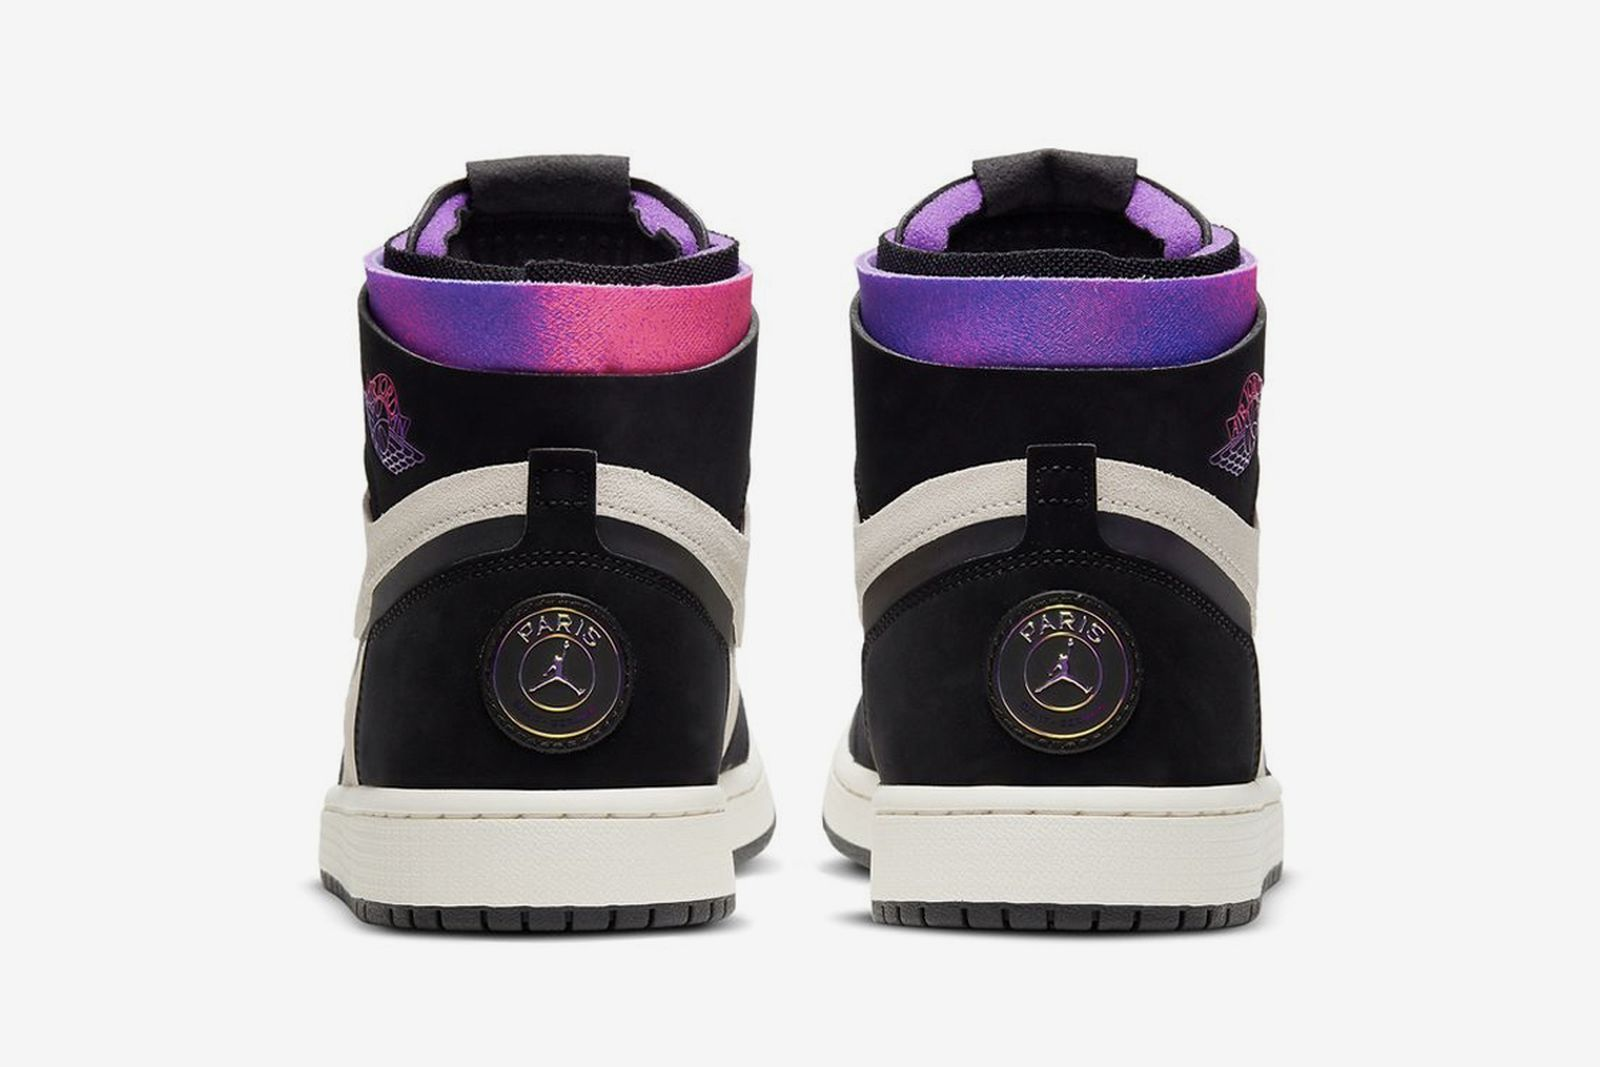 paris-saint-germain-air-jordan-1-high-zoom-cmft-release-date-price-04